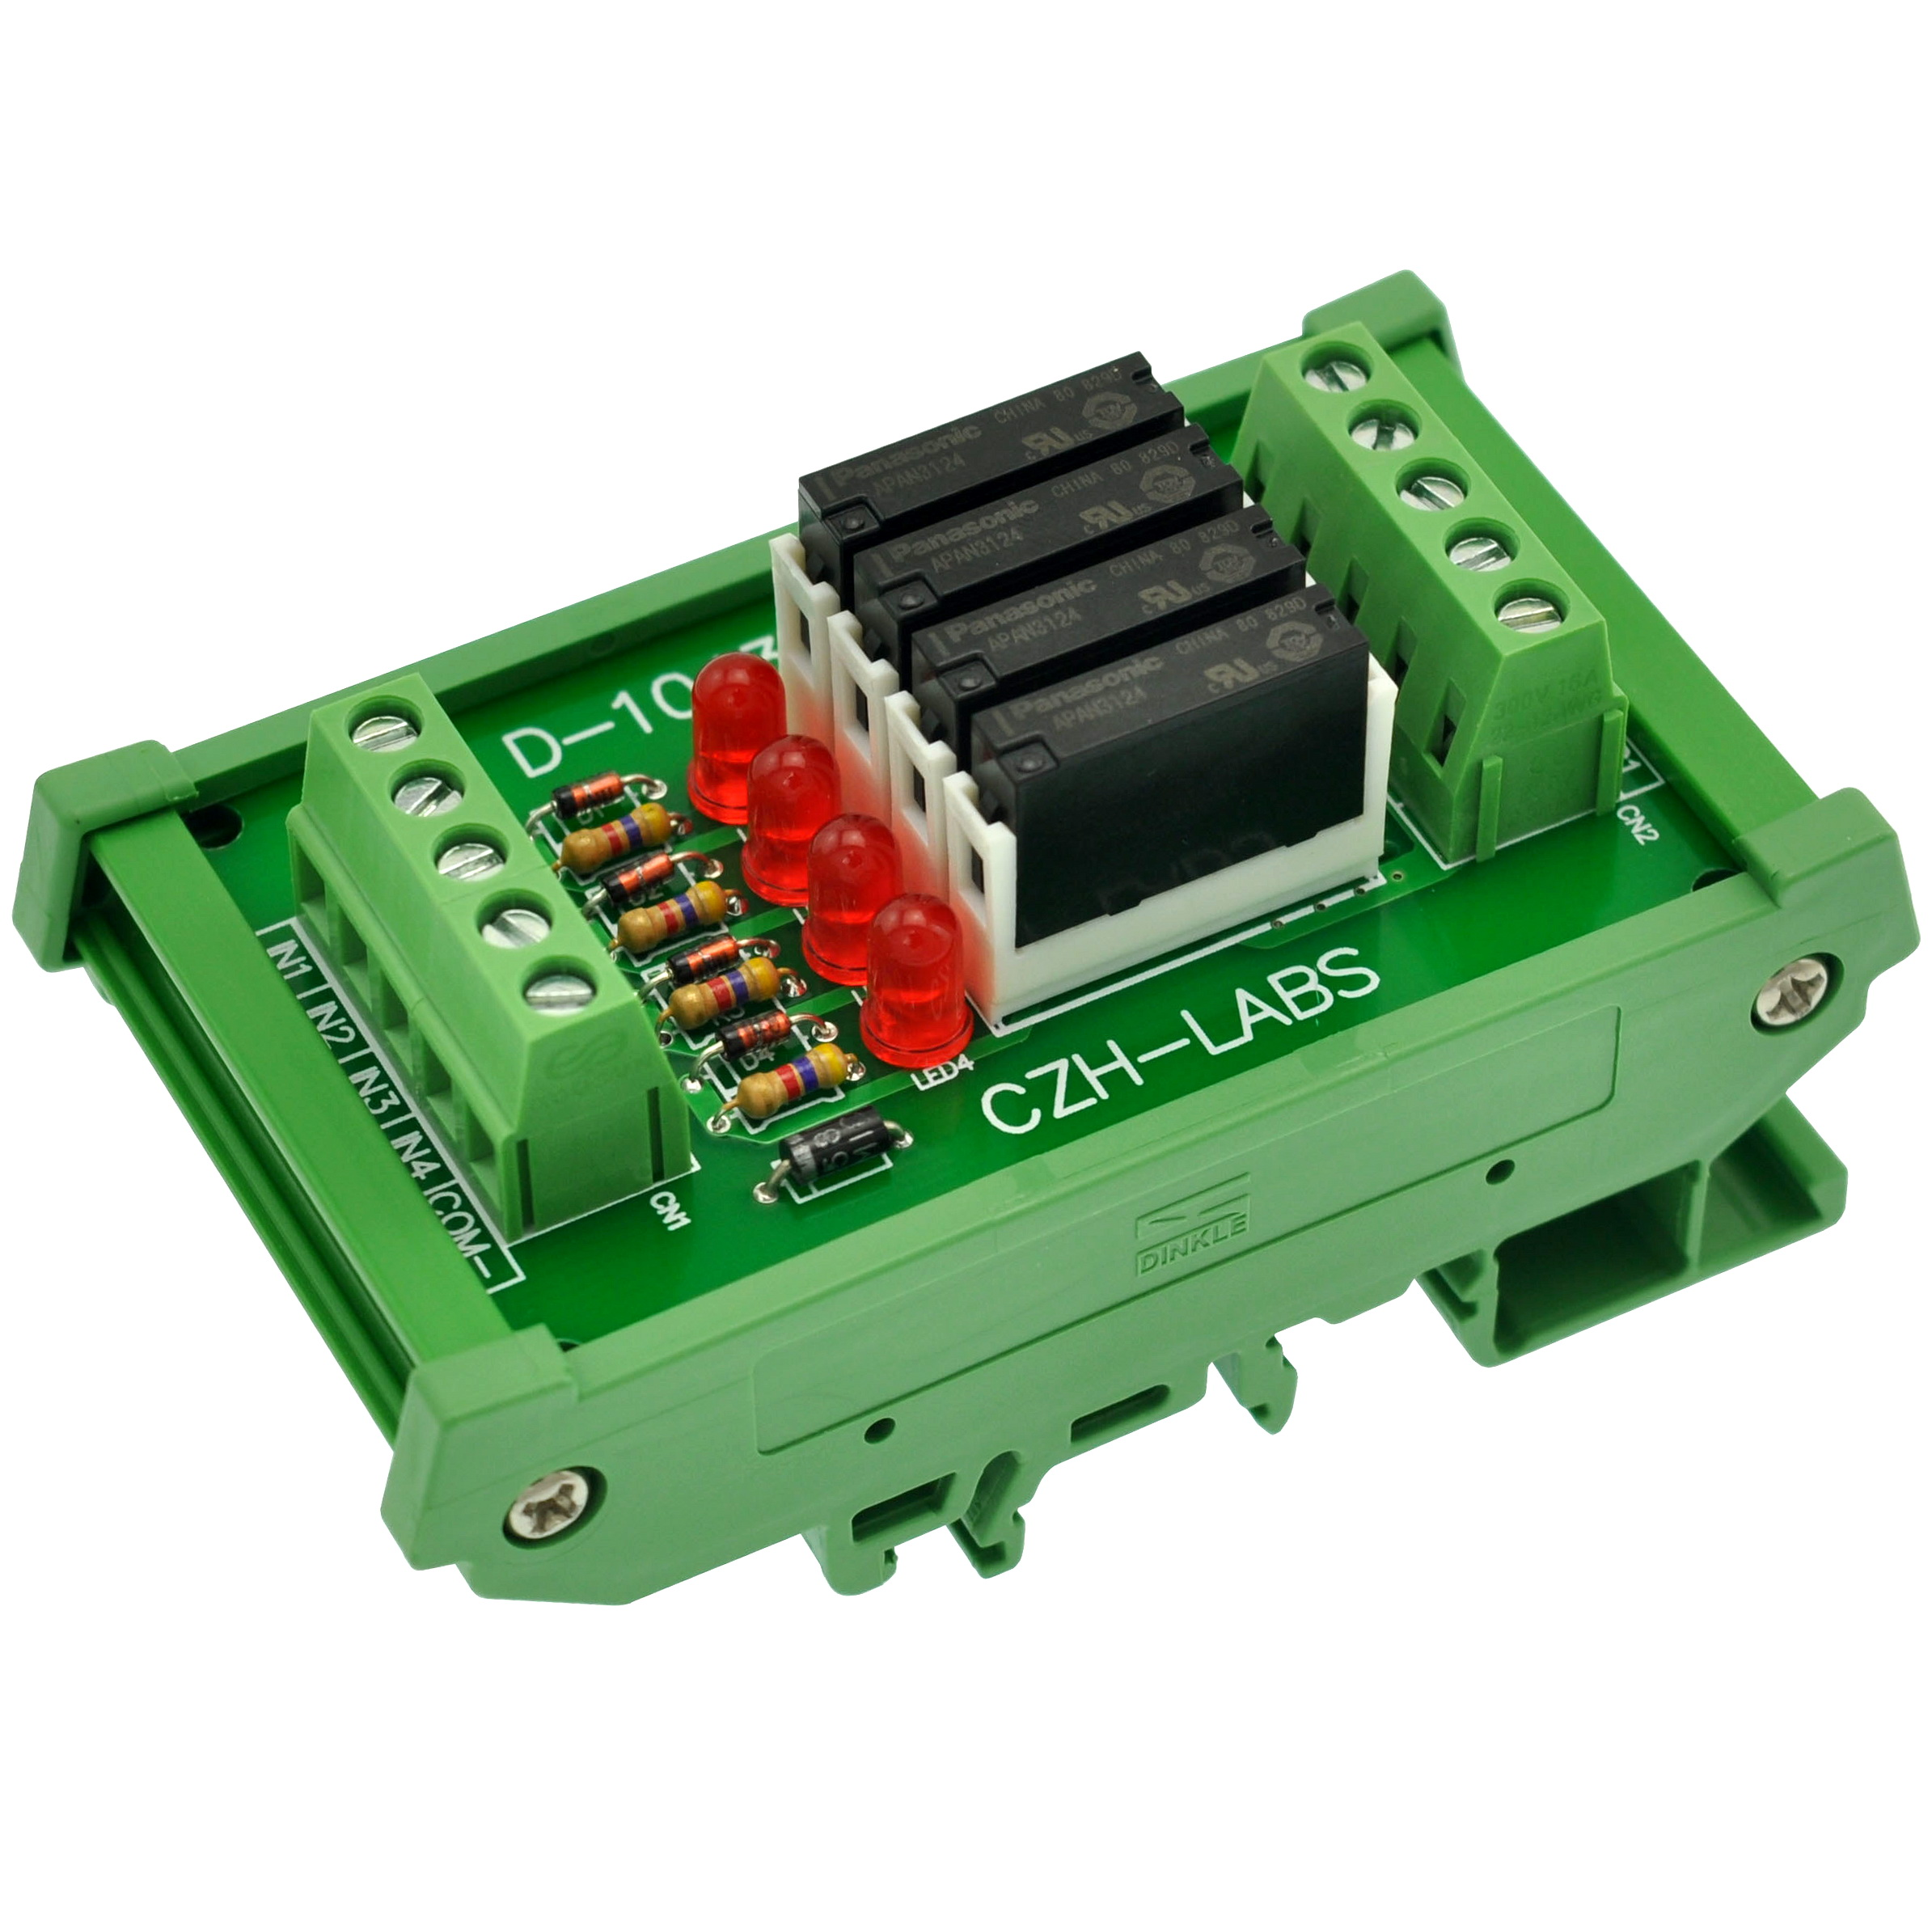 Slim DIN Rail Mount DC24V Source/PNP 4 SPST-NO 5A Power Relay Module, APAN3124Slim DIN Rail Mount DC24V Source/PNP 4 SPST-NO 5A Power Relay Module, APAN3124